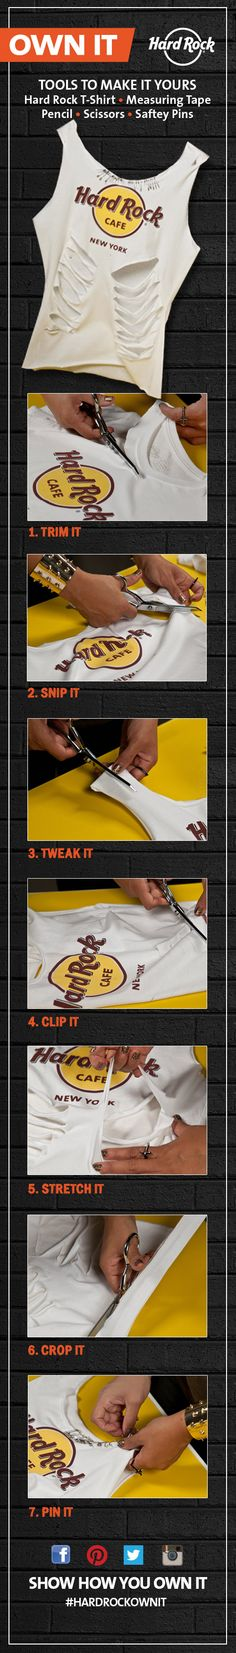 Trim it. Tweak It. Pin it. #hardrockownit #hardrock #hardrockcafe